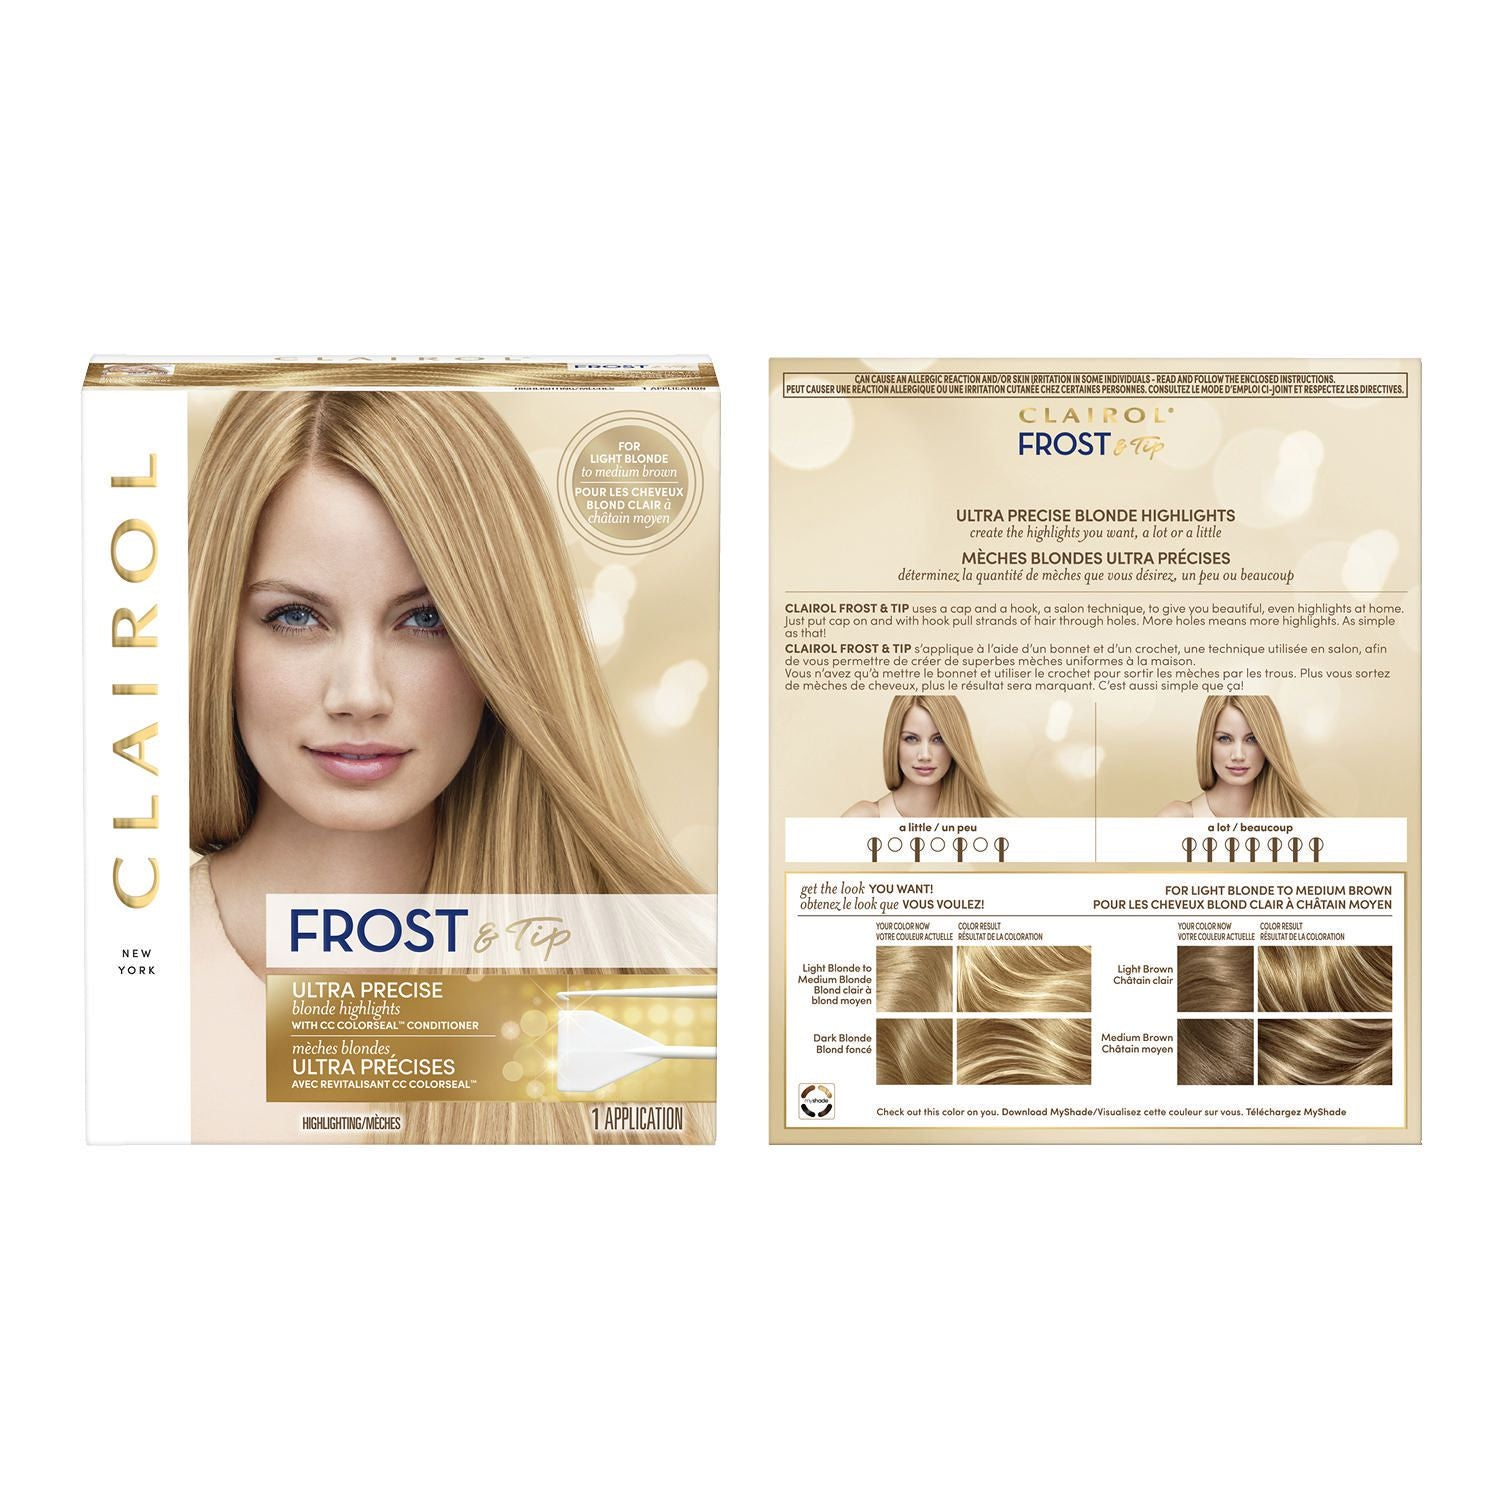 Clairol Frost & Tip Highlighting Kit 1 Application